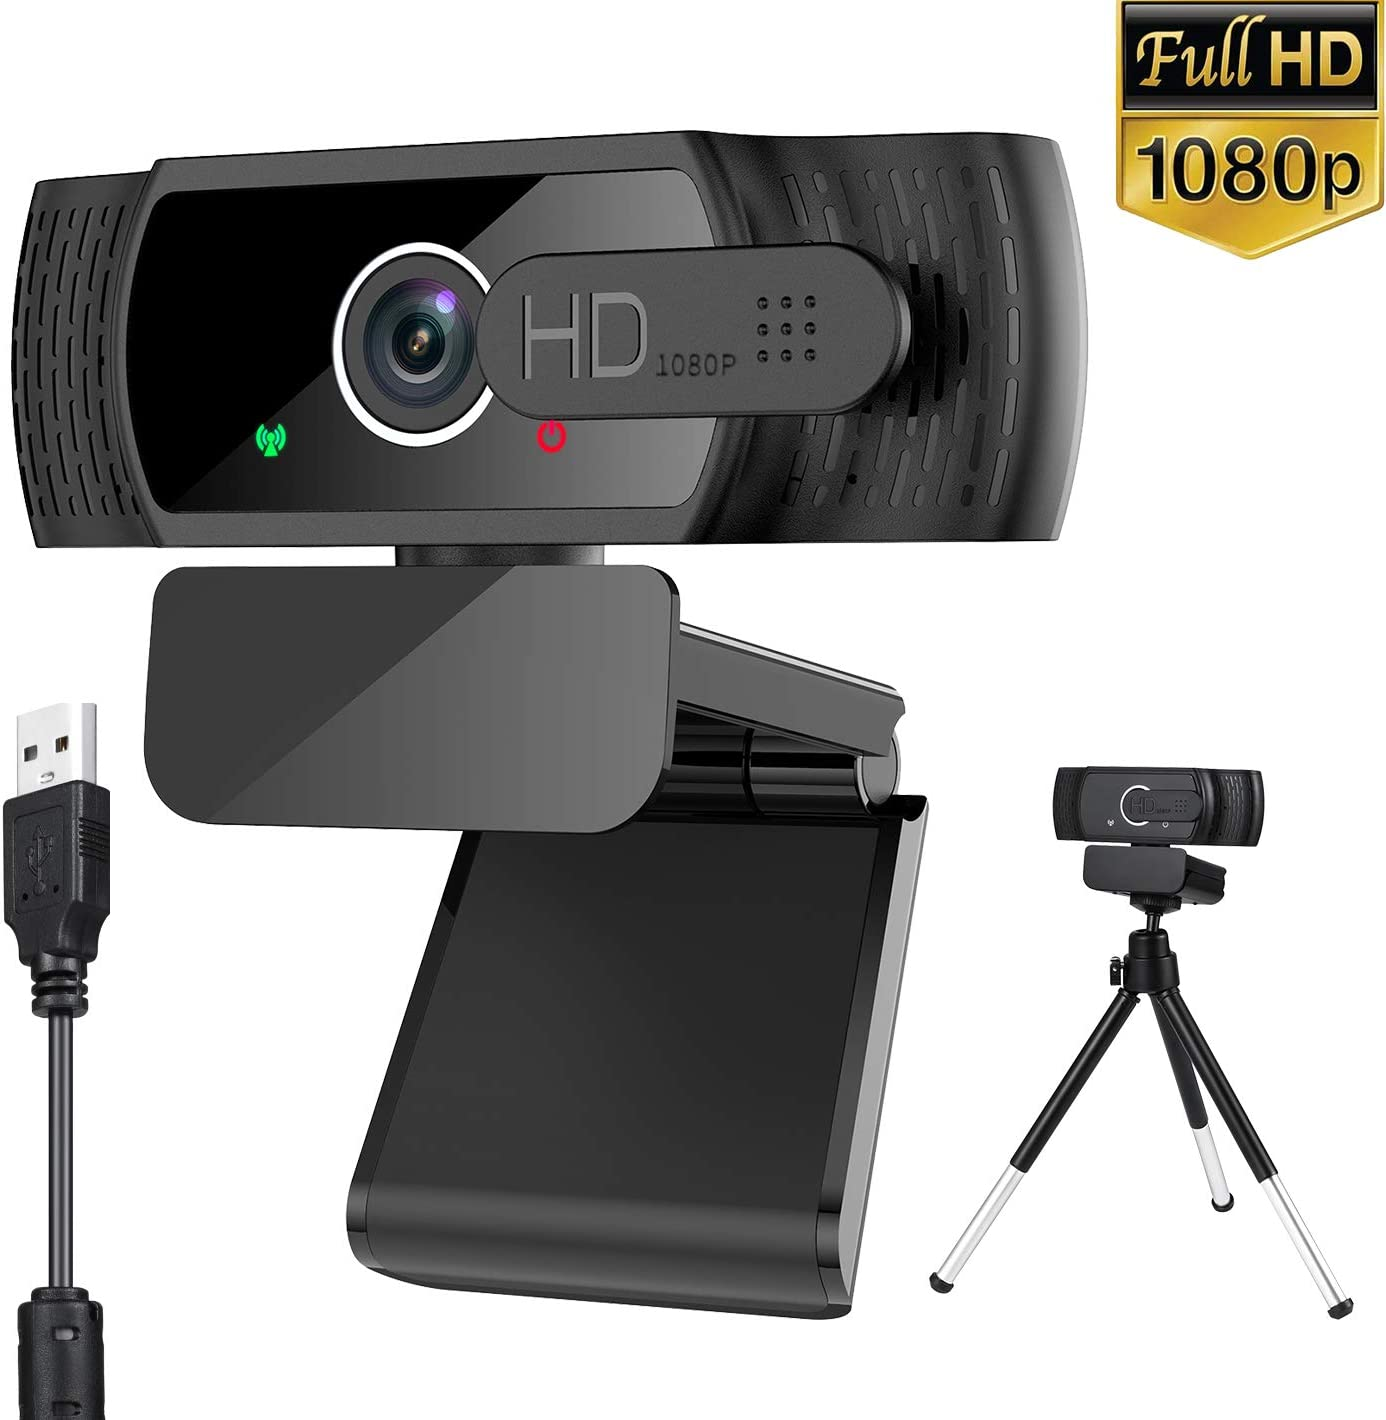 Webcam with Microphone, AXUF 1080P HD Webcam with Privacy Cover &Tripod,110-Degree Wide Angle Streaming Web Camera, USB Laptop Desktop Web Camera Built-in Mic for Video Calling Conference Recording